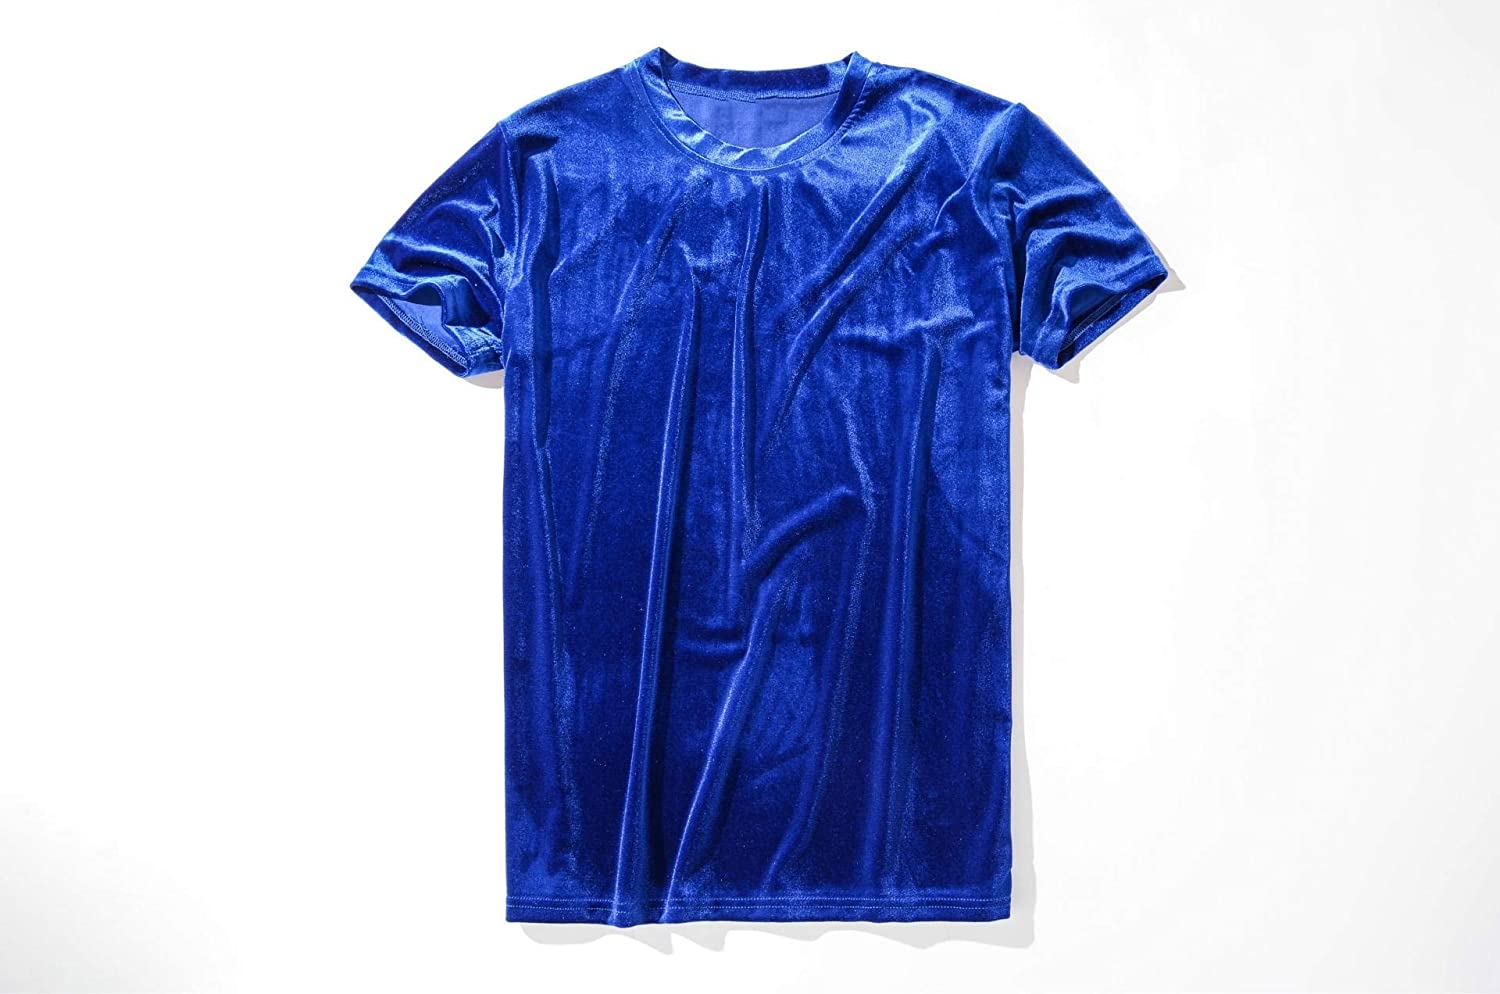 SportsX Men Fashional Short-Sleeve Comfort Solid Tees Pullover Top